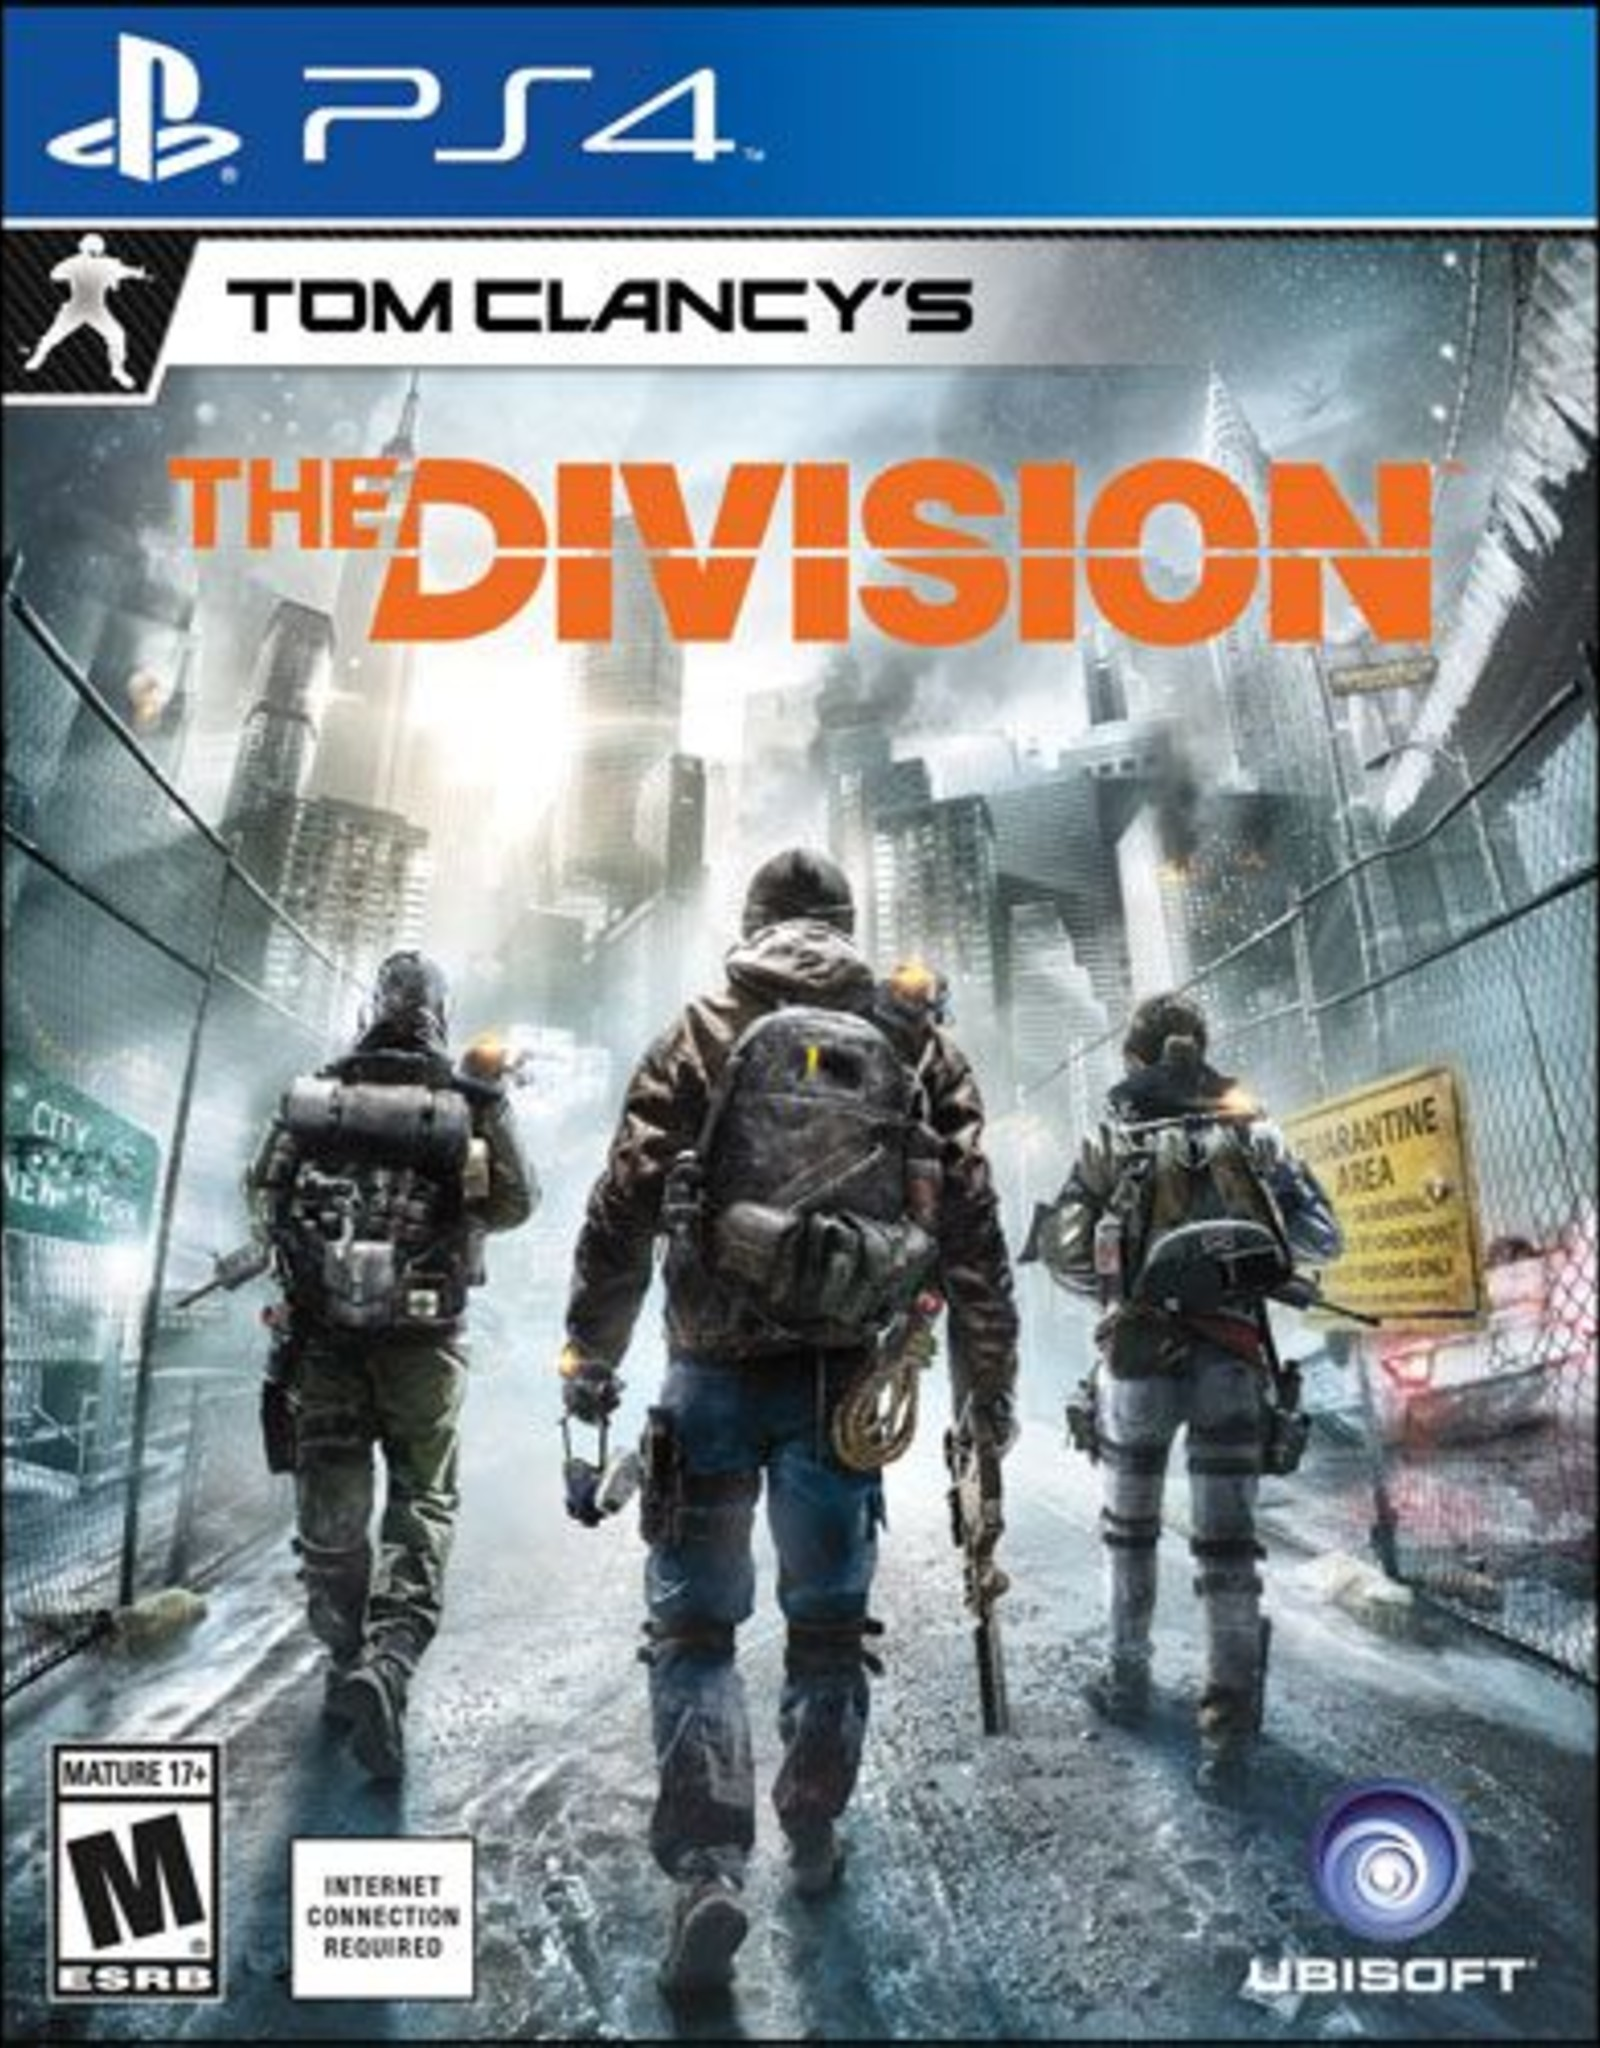 Tom Clancy's The Divison -PS4 DIGITAL